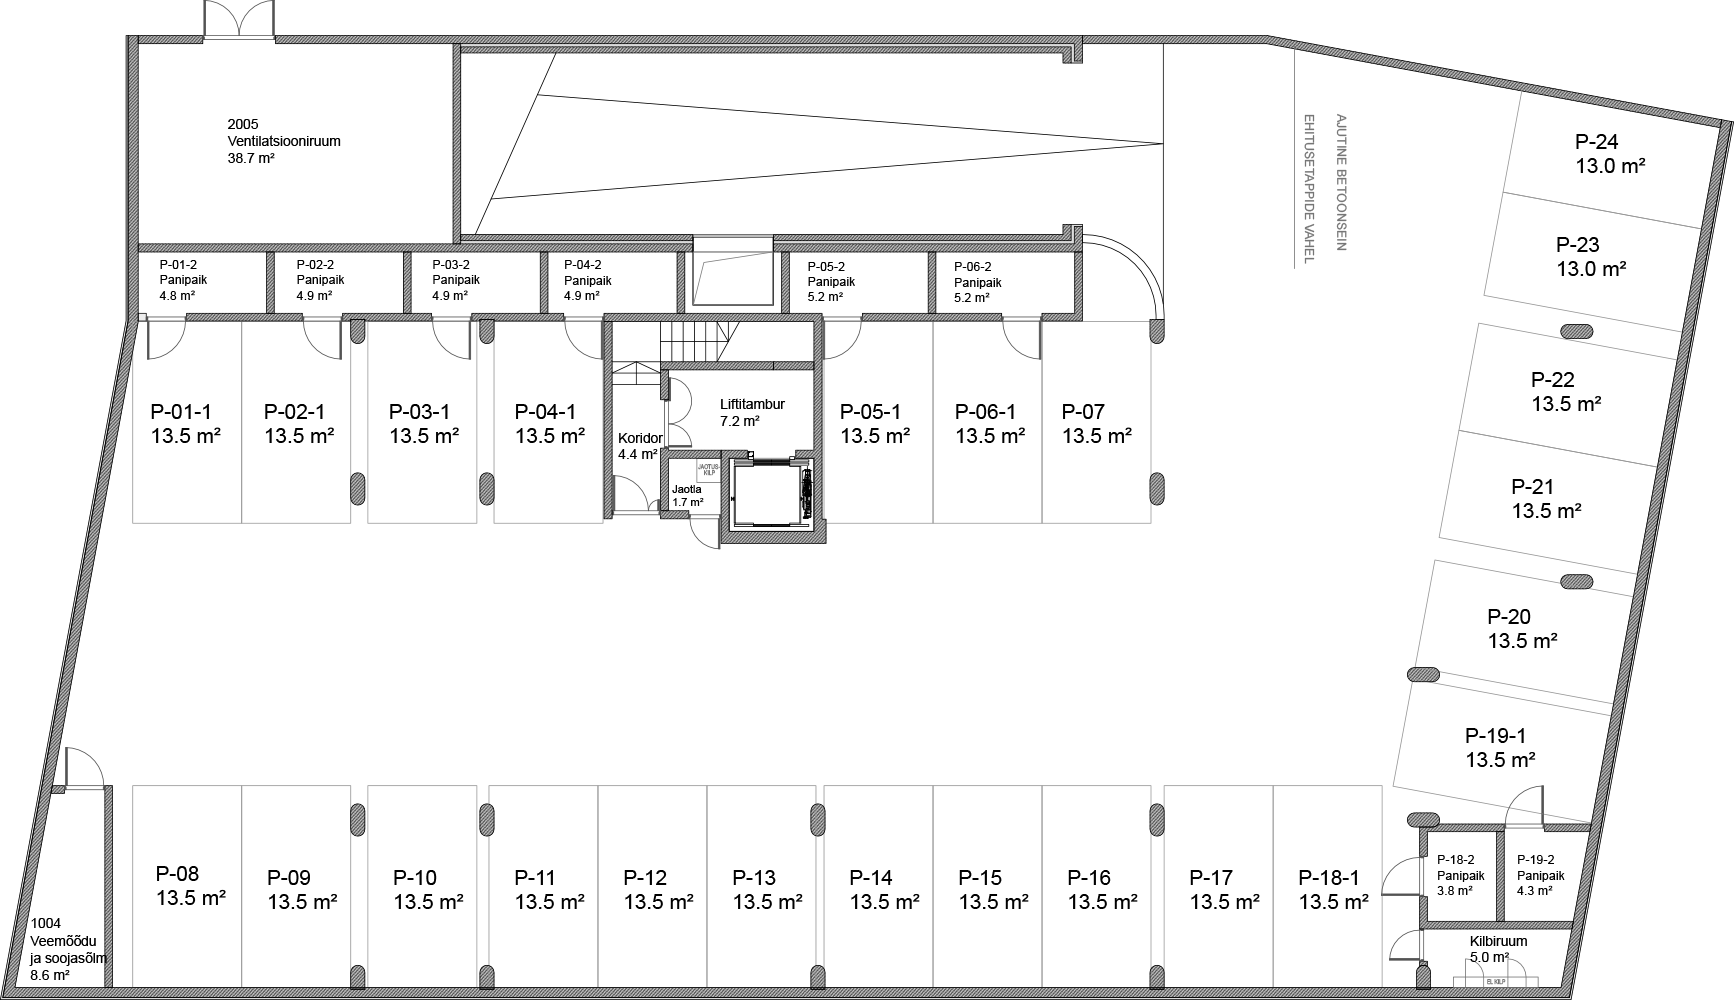 Floor 0 plan of Kiikri Apartment House A